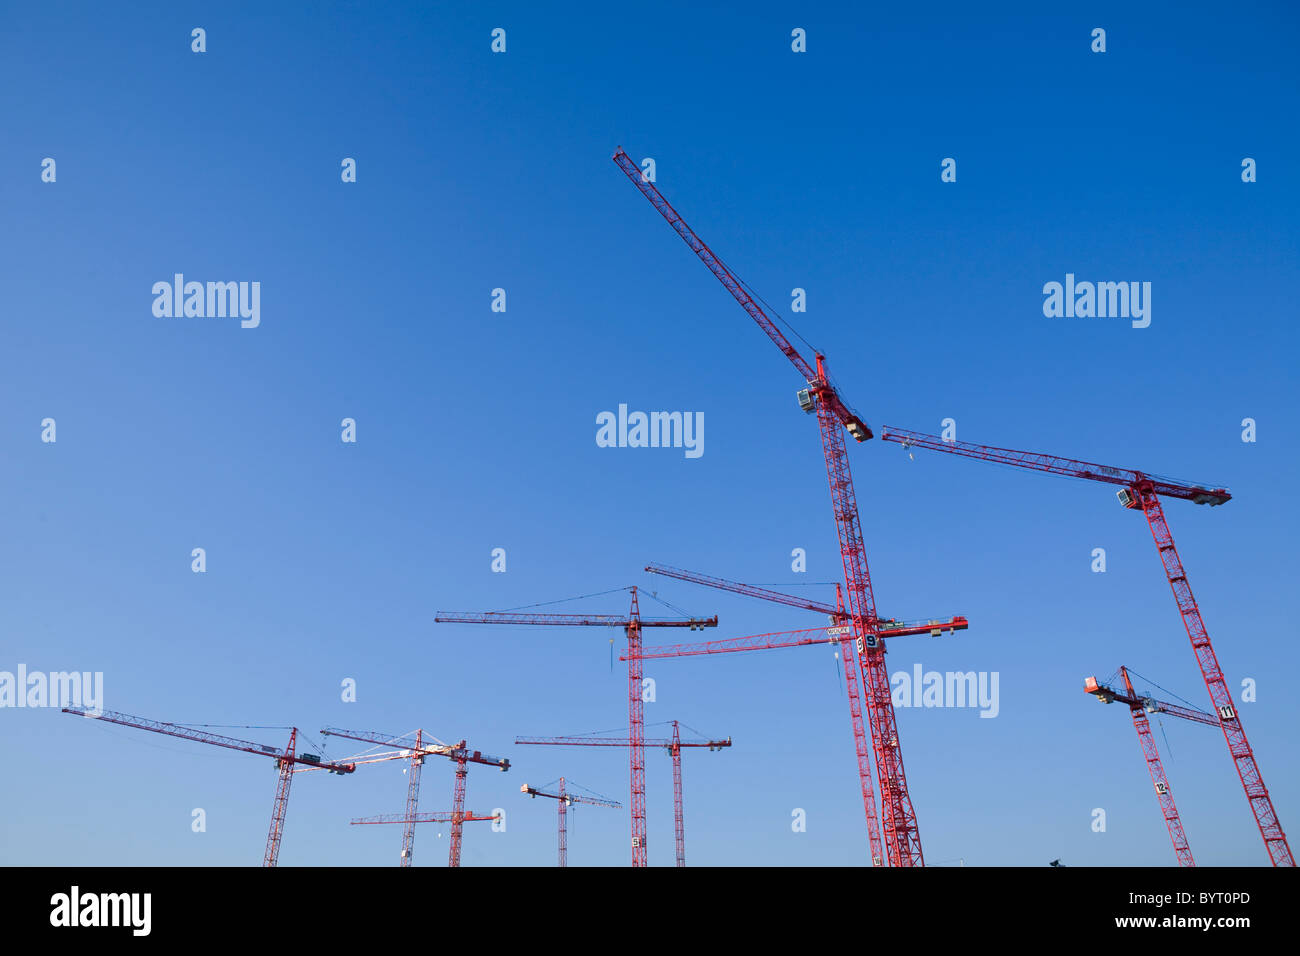 Building cranes - Stock Image